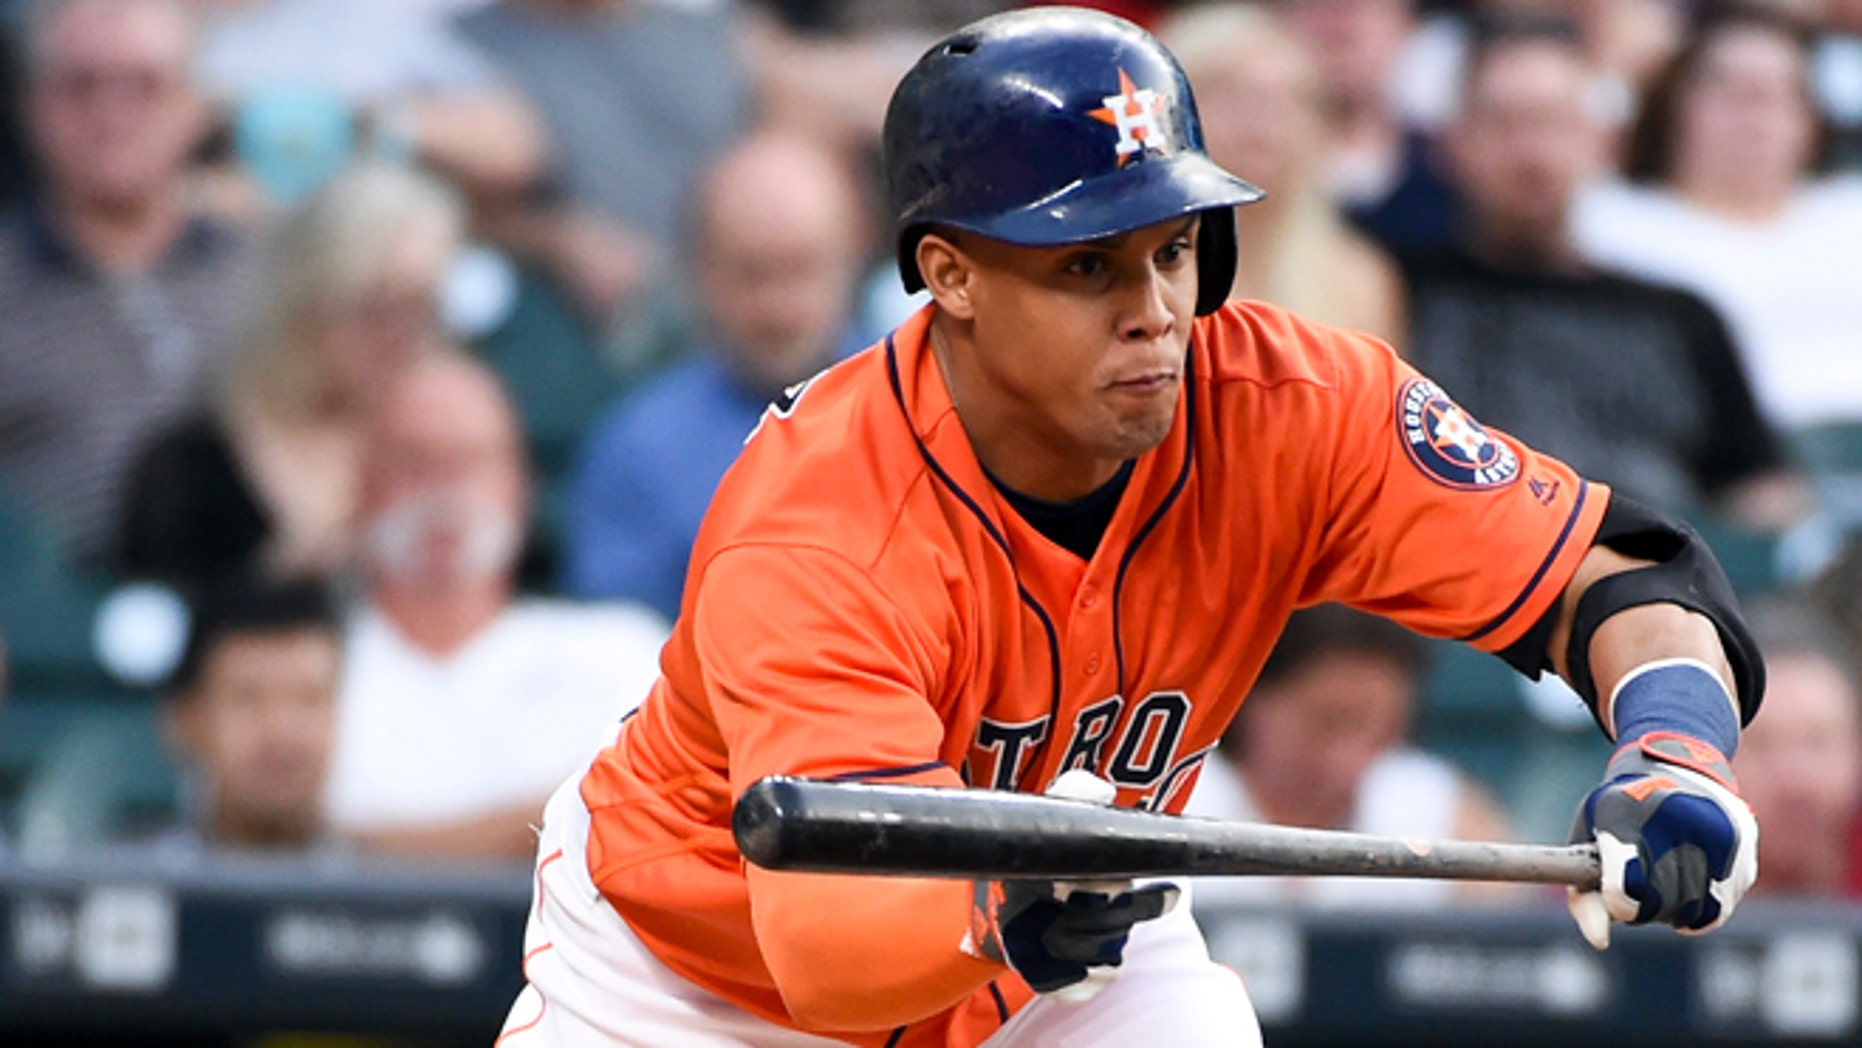 Houston Astros' Carlos Gomez bunts in the second inning of a baseball game against the Seattle Mariners, Friday, May 6, 2016, in Houston. (AP Photo/Eric Christian Smith)